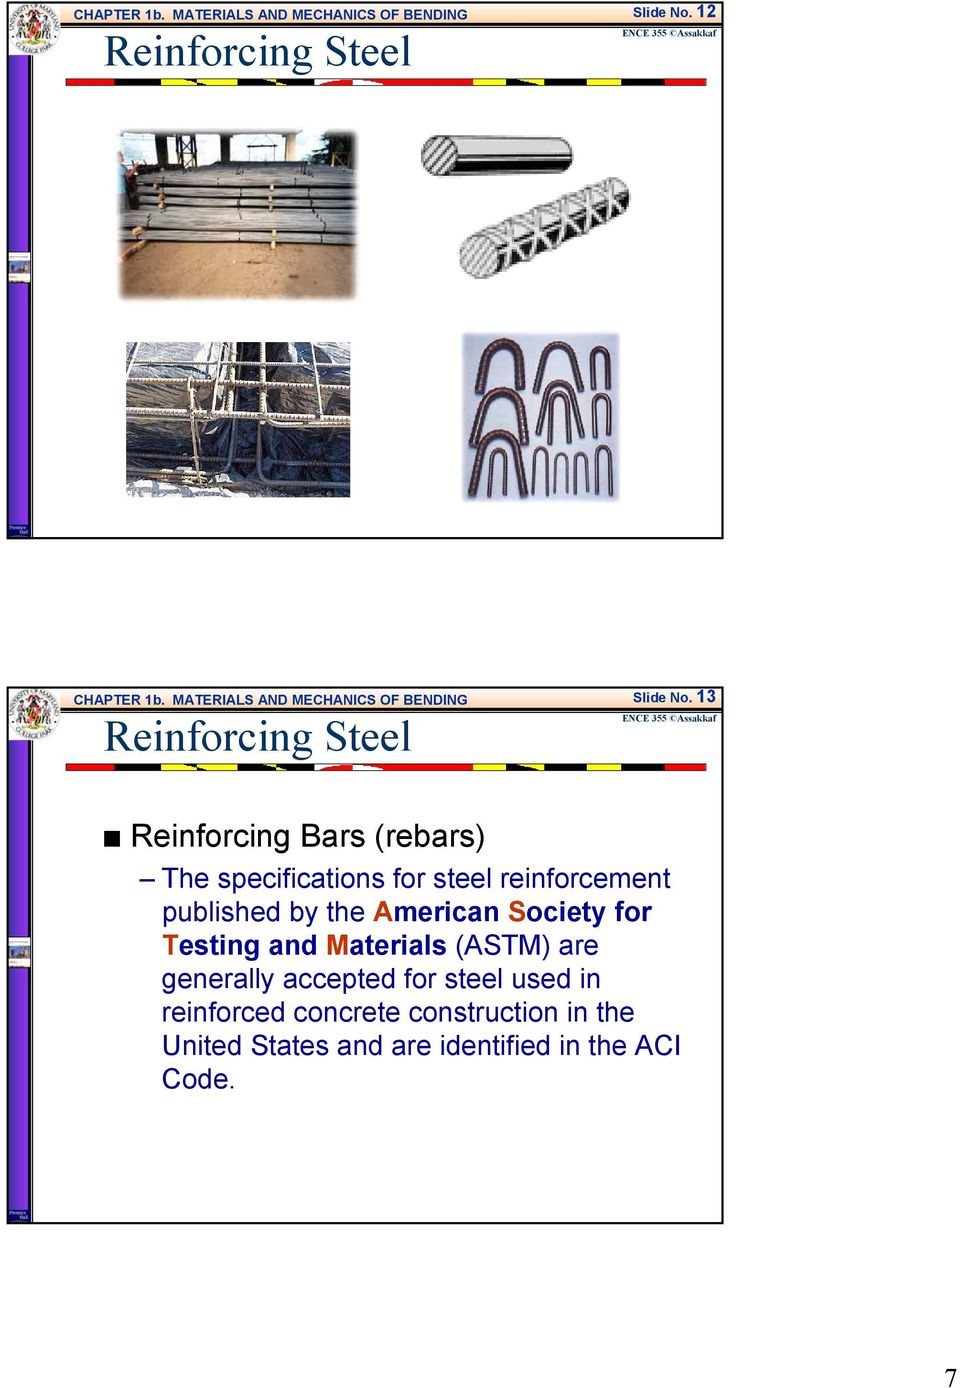 Reinforcing Bars (rebars) The specifications for steel reinforcement published by the